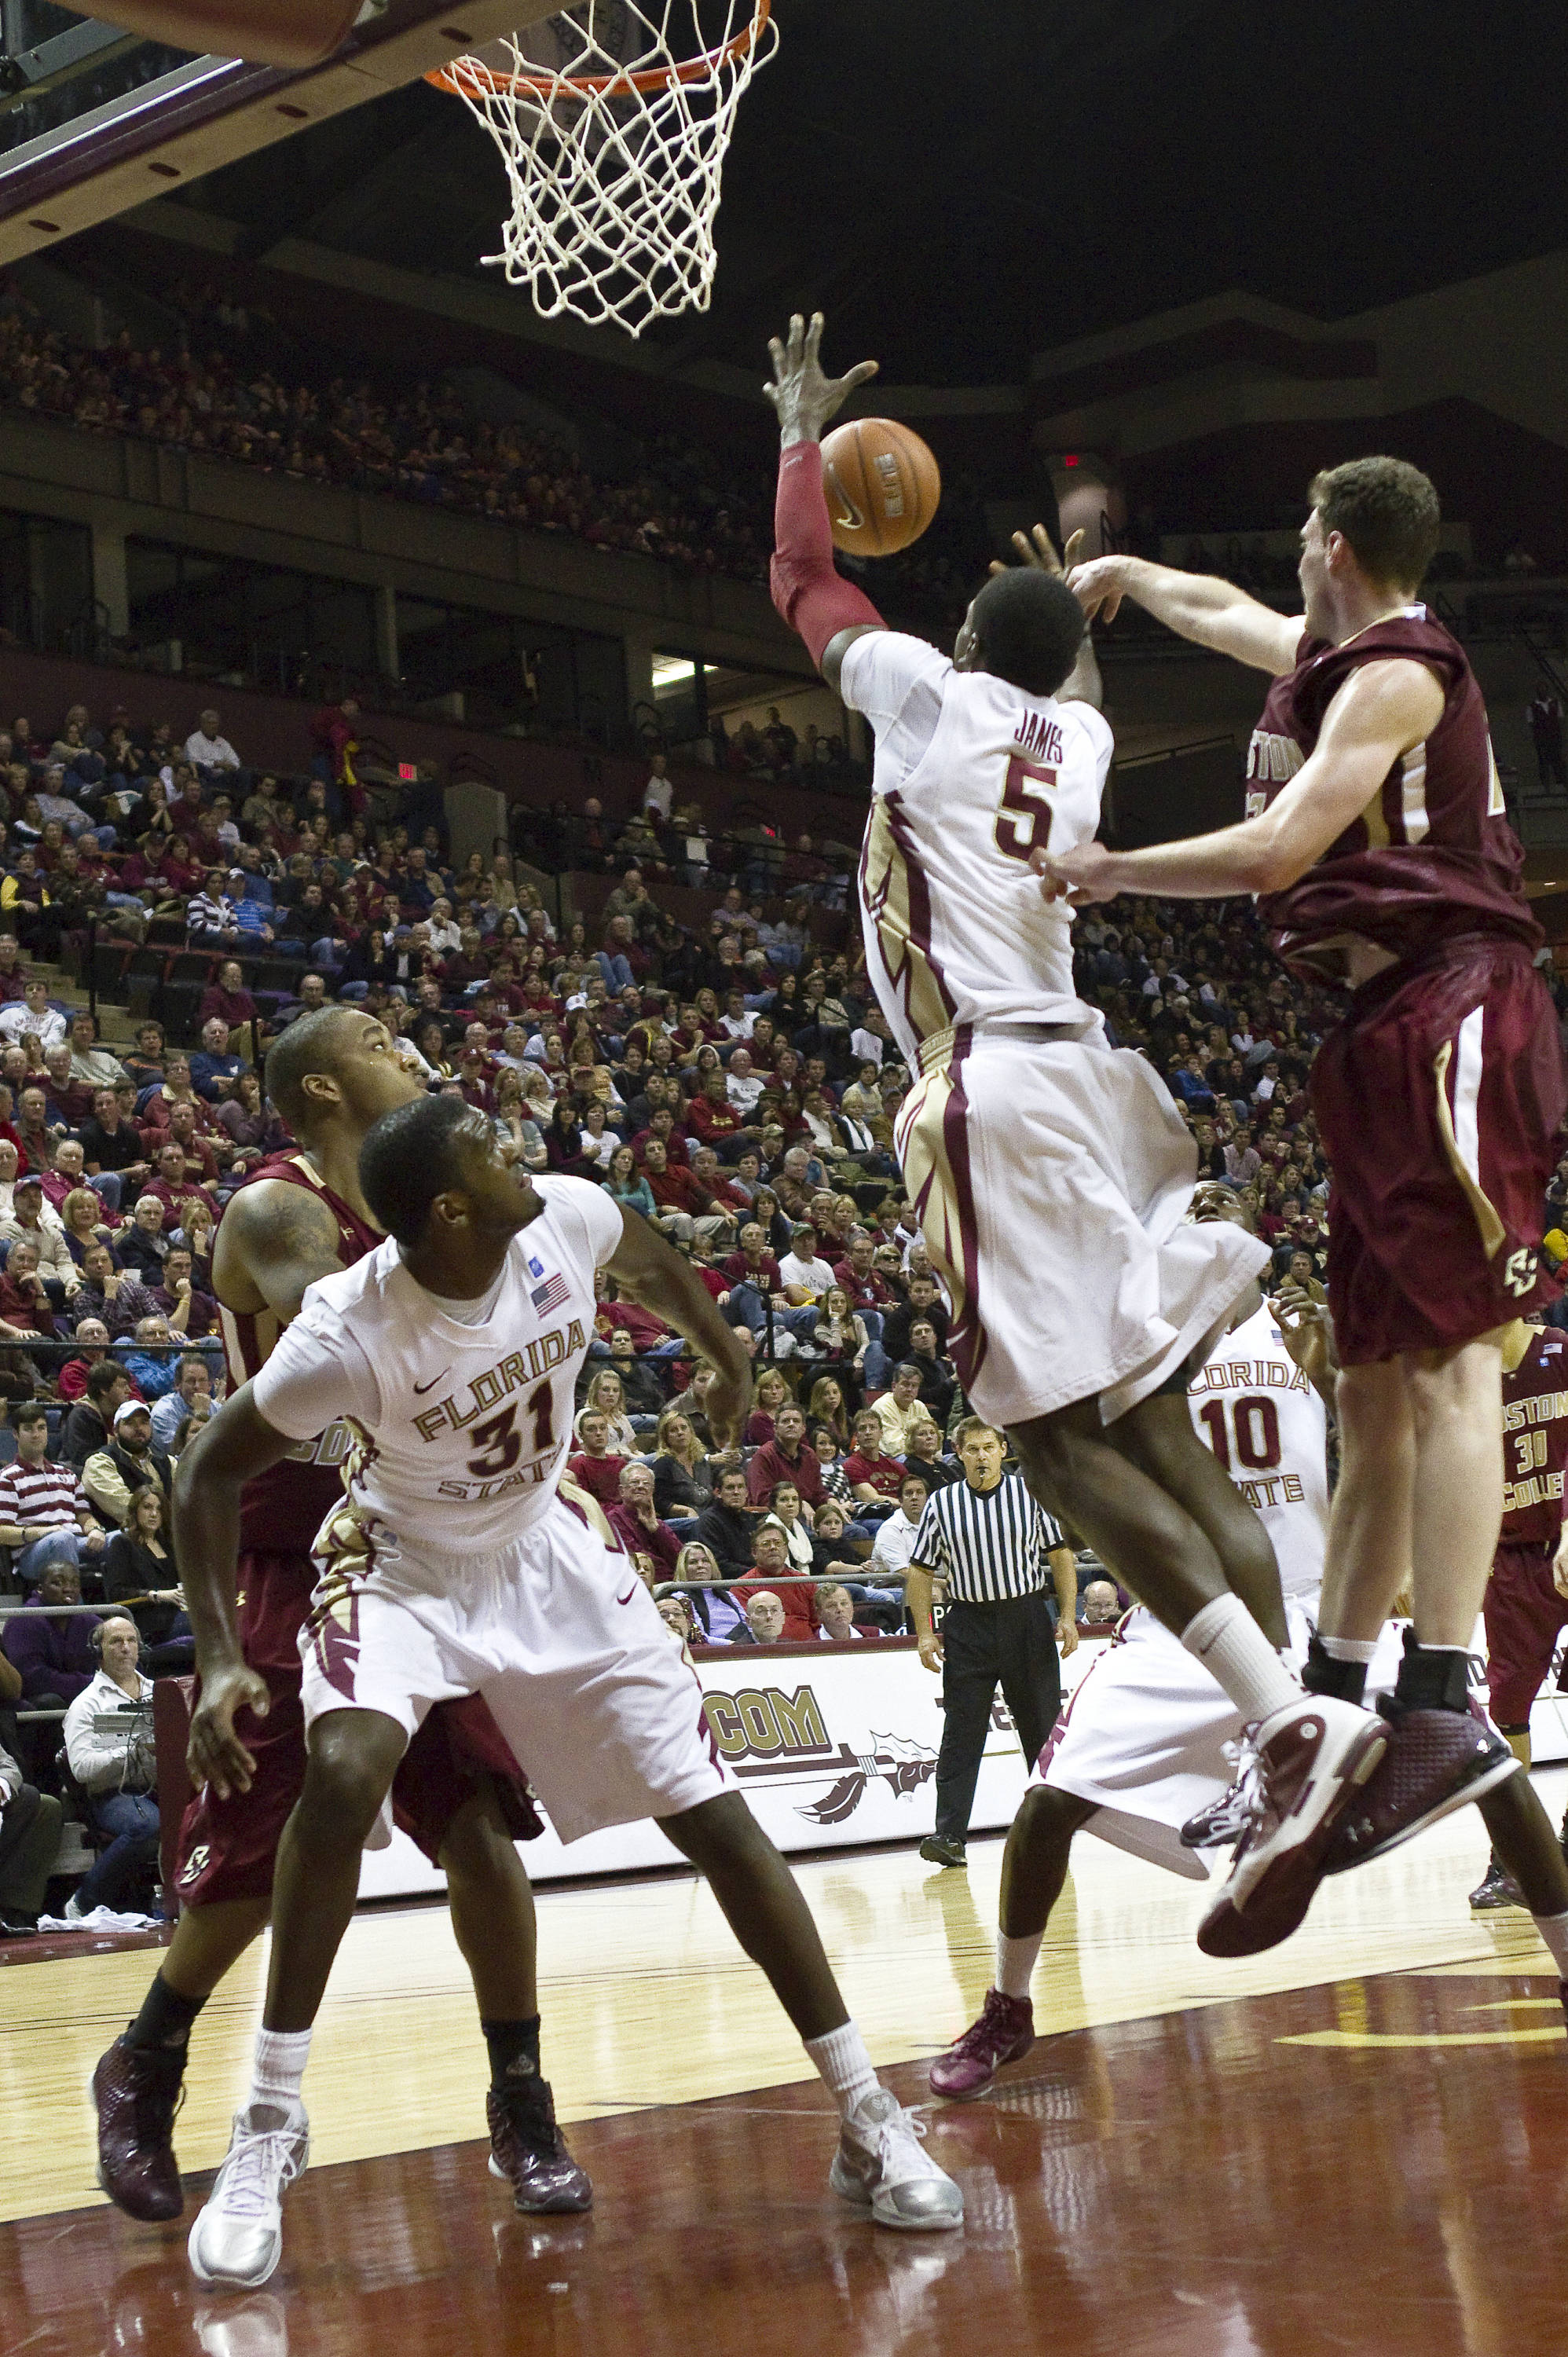 FSU vs Boston College - 01/22/11 - Bernard James (5), Chris Singleton (31)